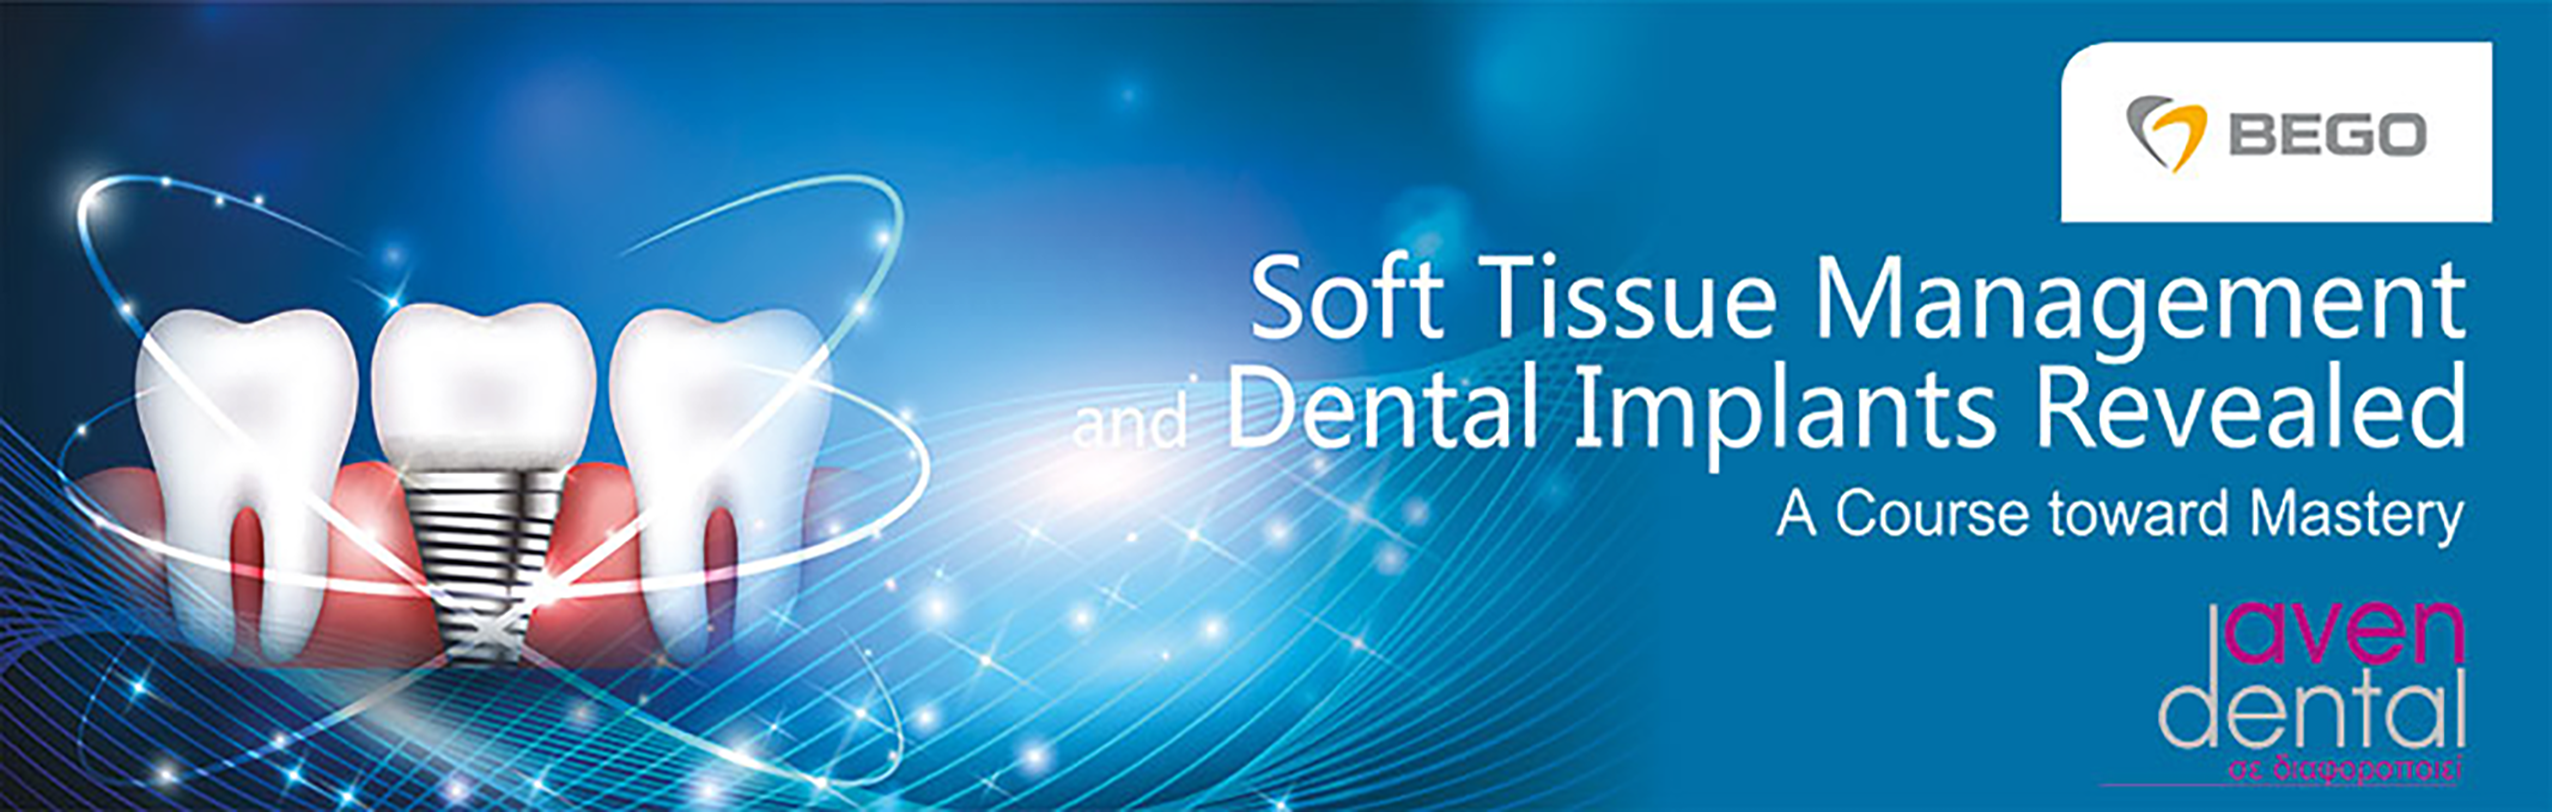 Soft Tissue Management and Dental Implants Revealed A Course toward Mastery